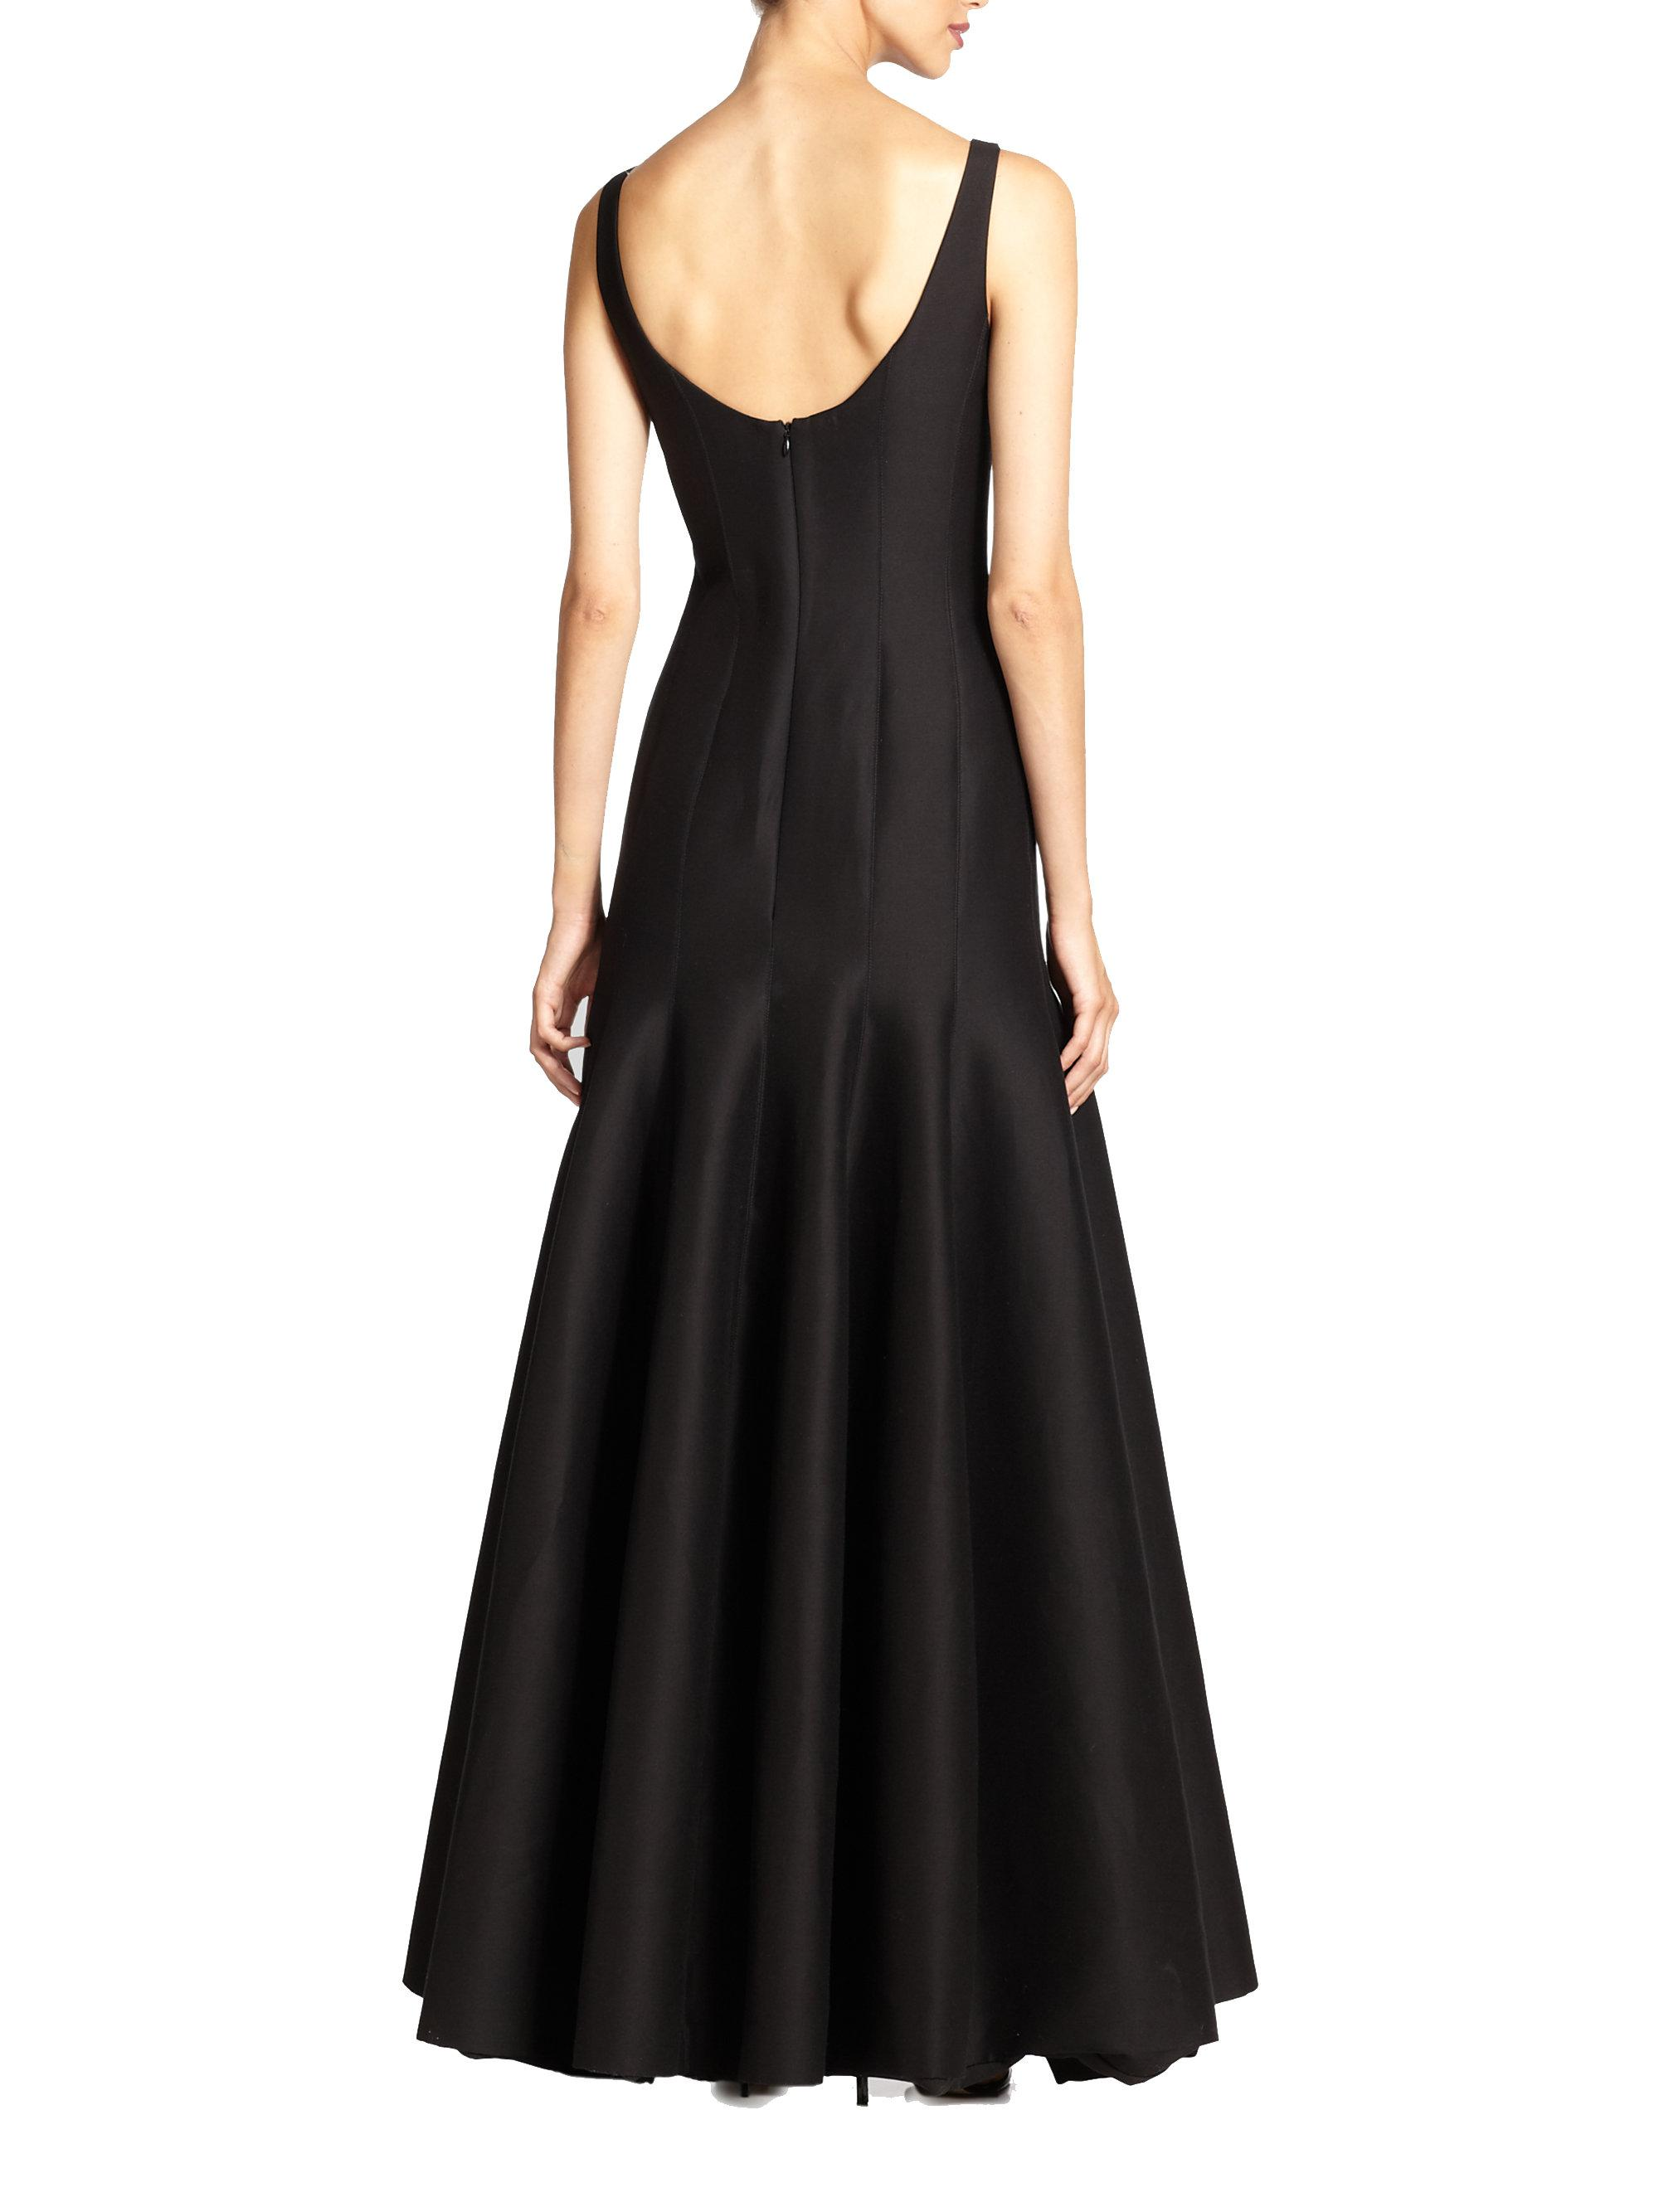 Lyst - Halston Heritage Faille Tulip Gown in Black